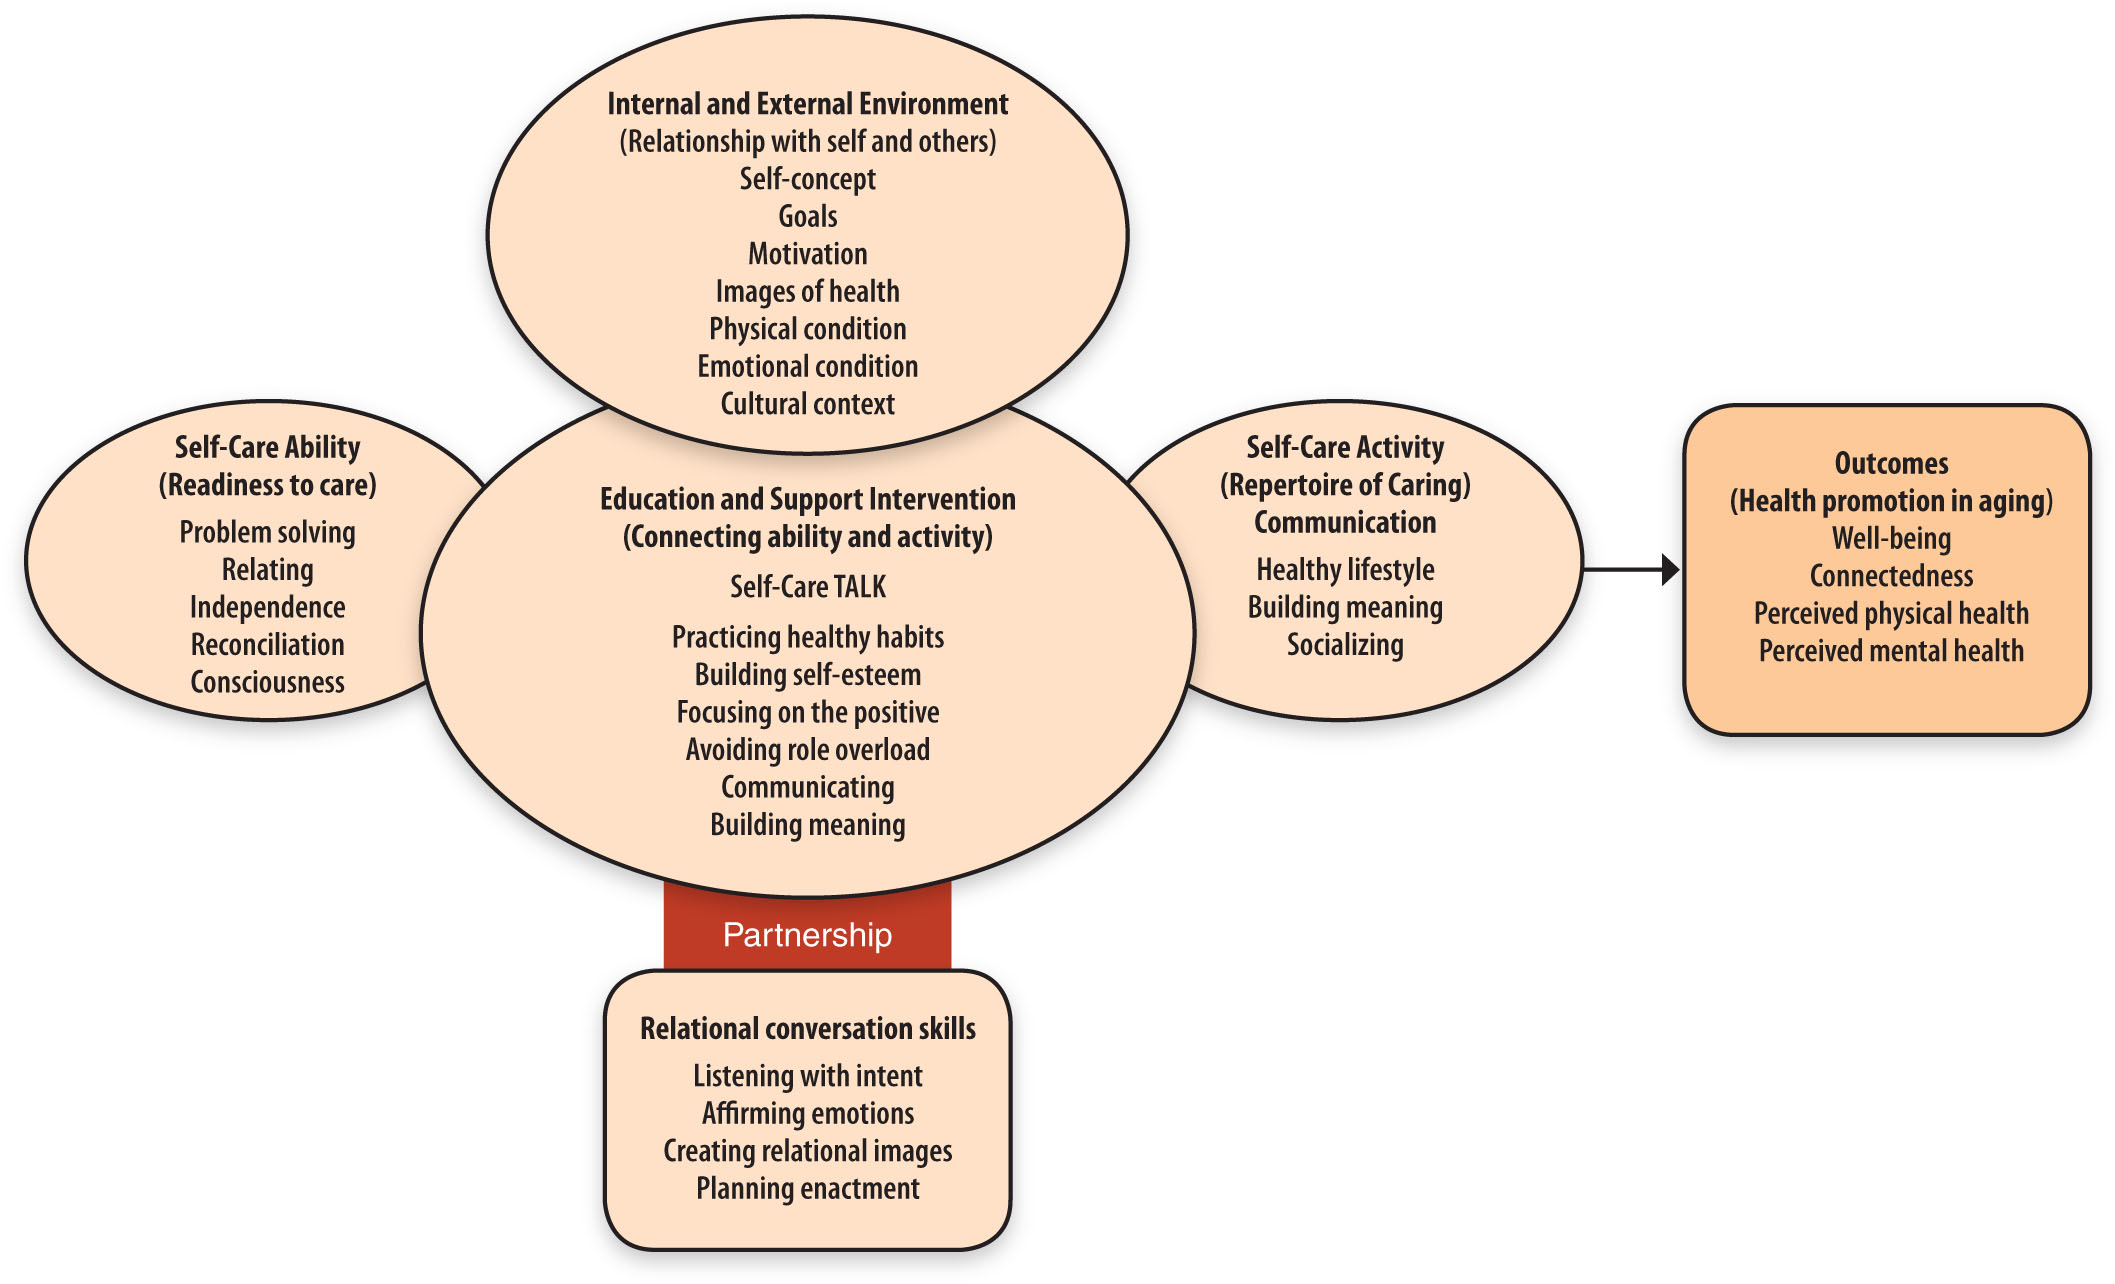 Self-Care TALK Intervention in Context of the Self-Care for Health Promotion in Aging Model.